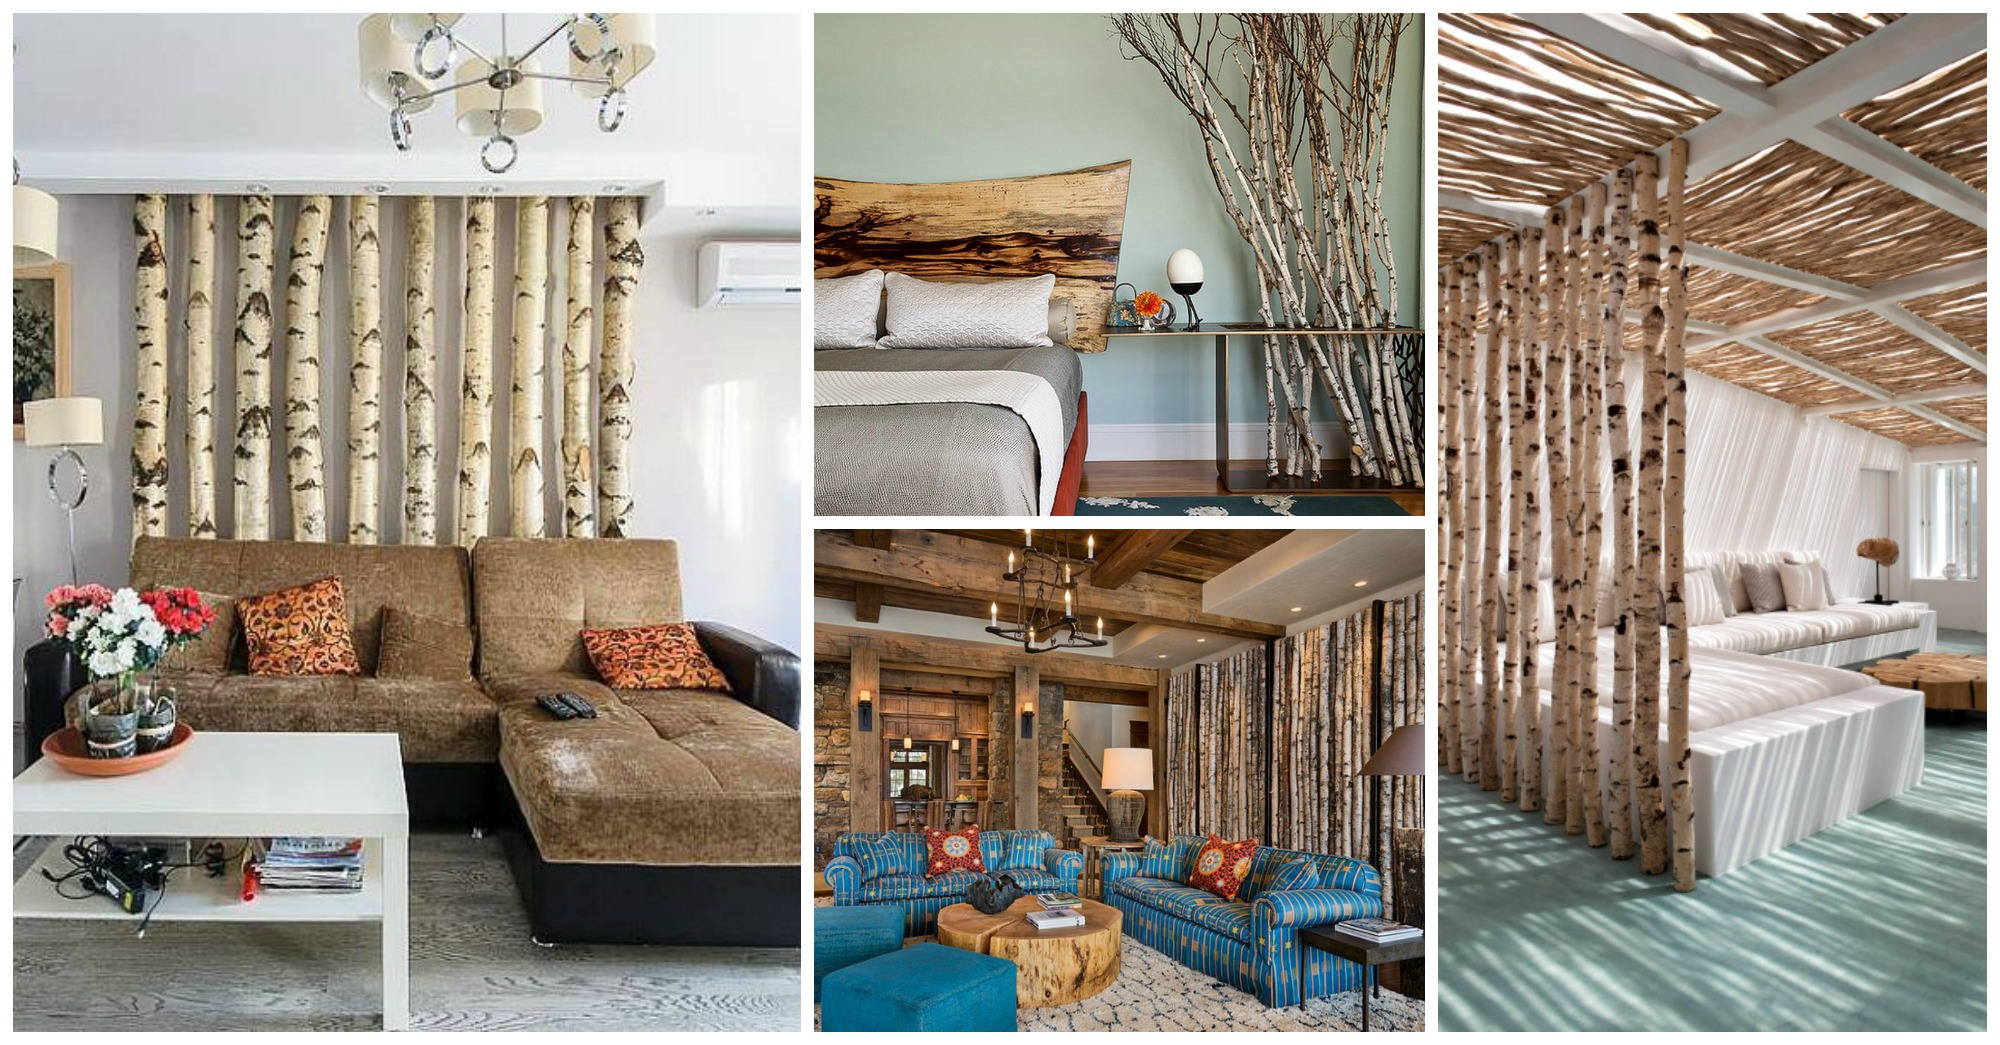 12 Amazing Ways To Use Actual Birch Trees In Your Interior